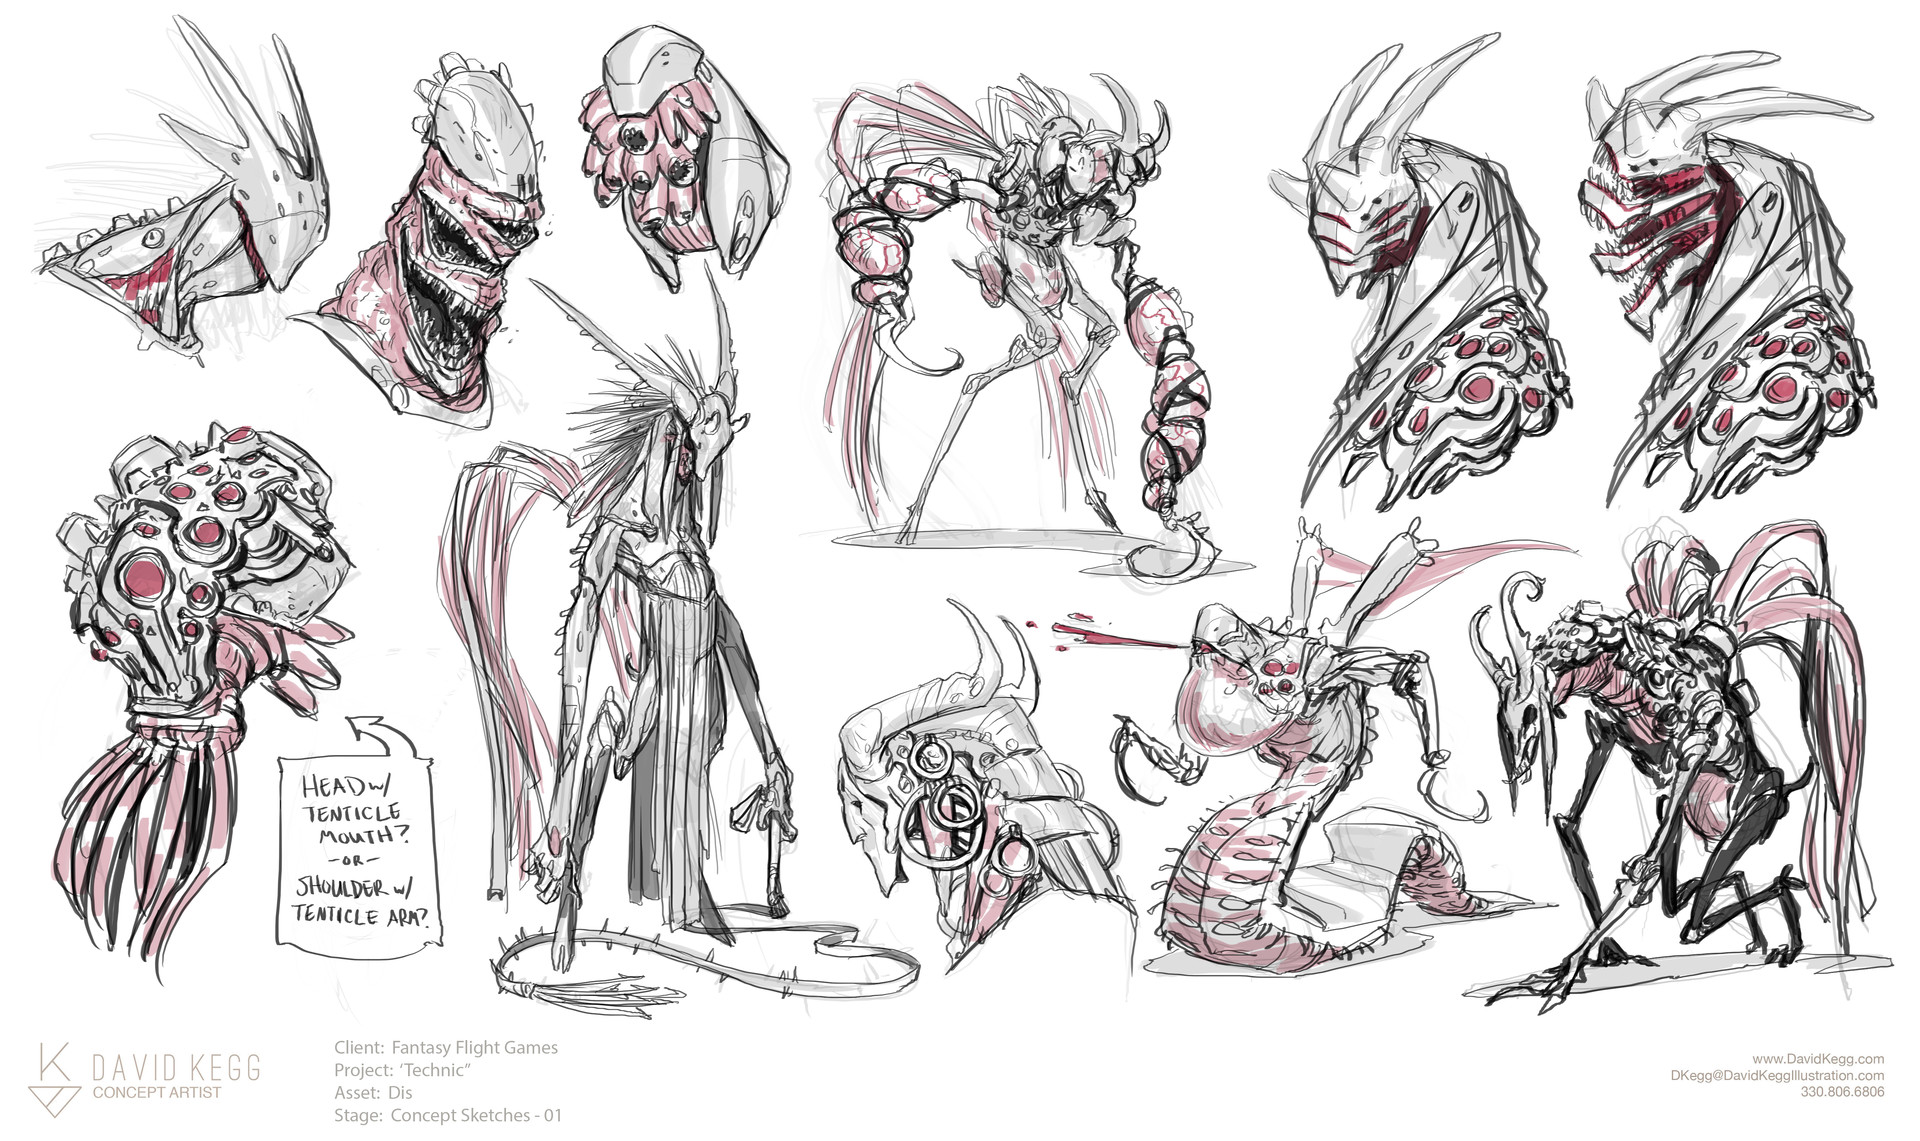 David kegg kegg ffgtechnic dis conceptsketches 01